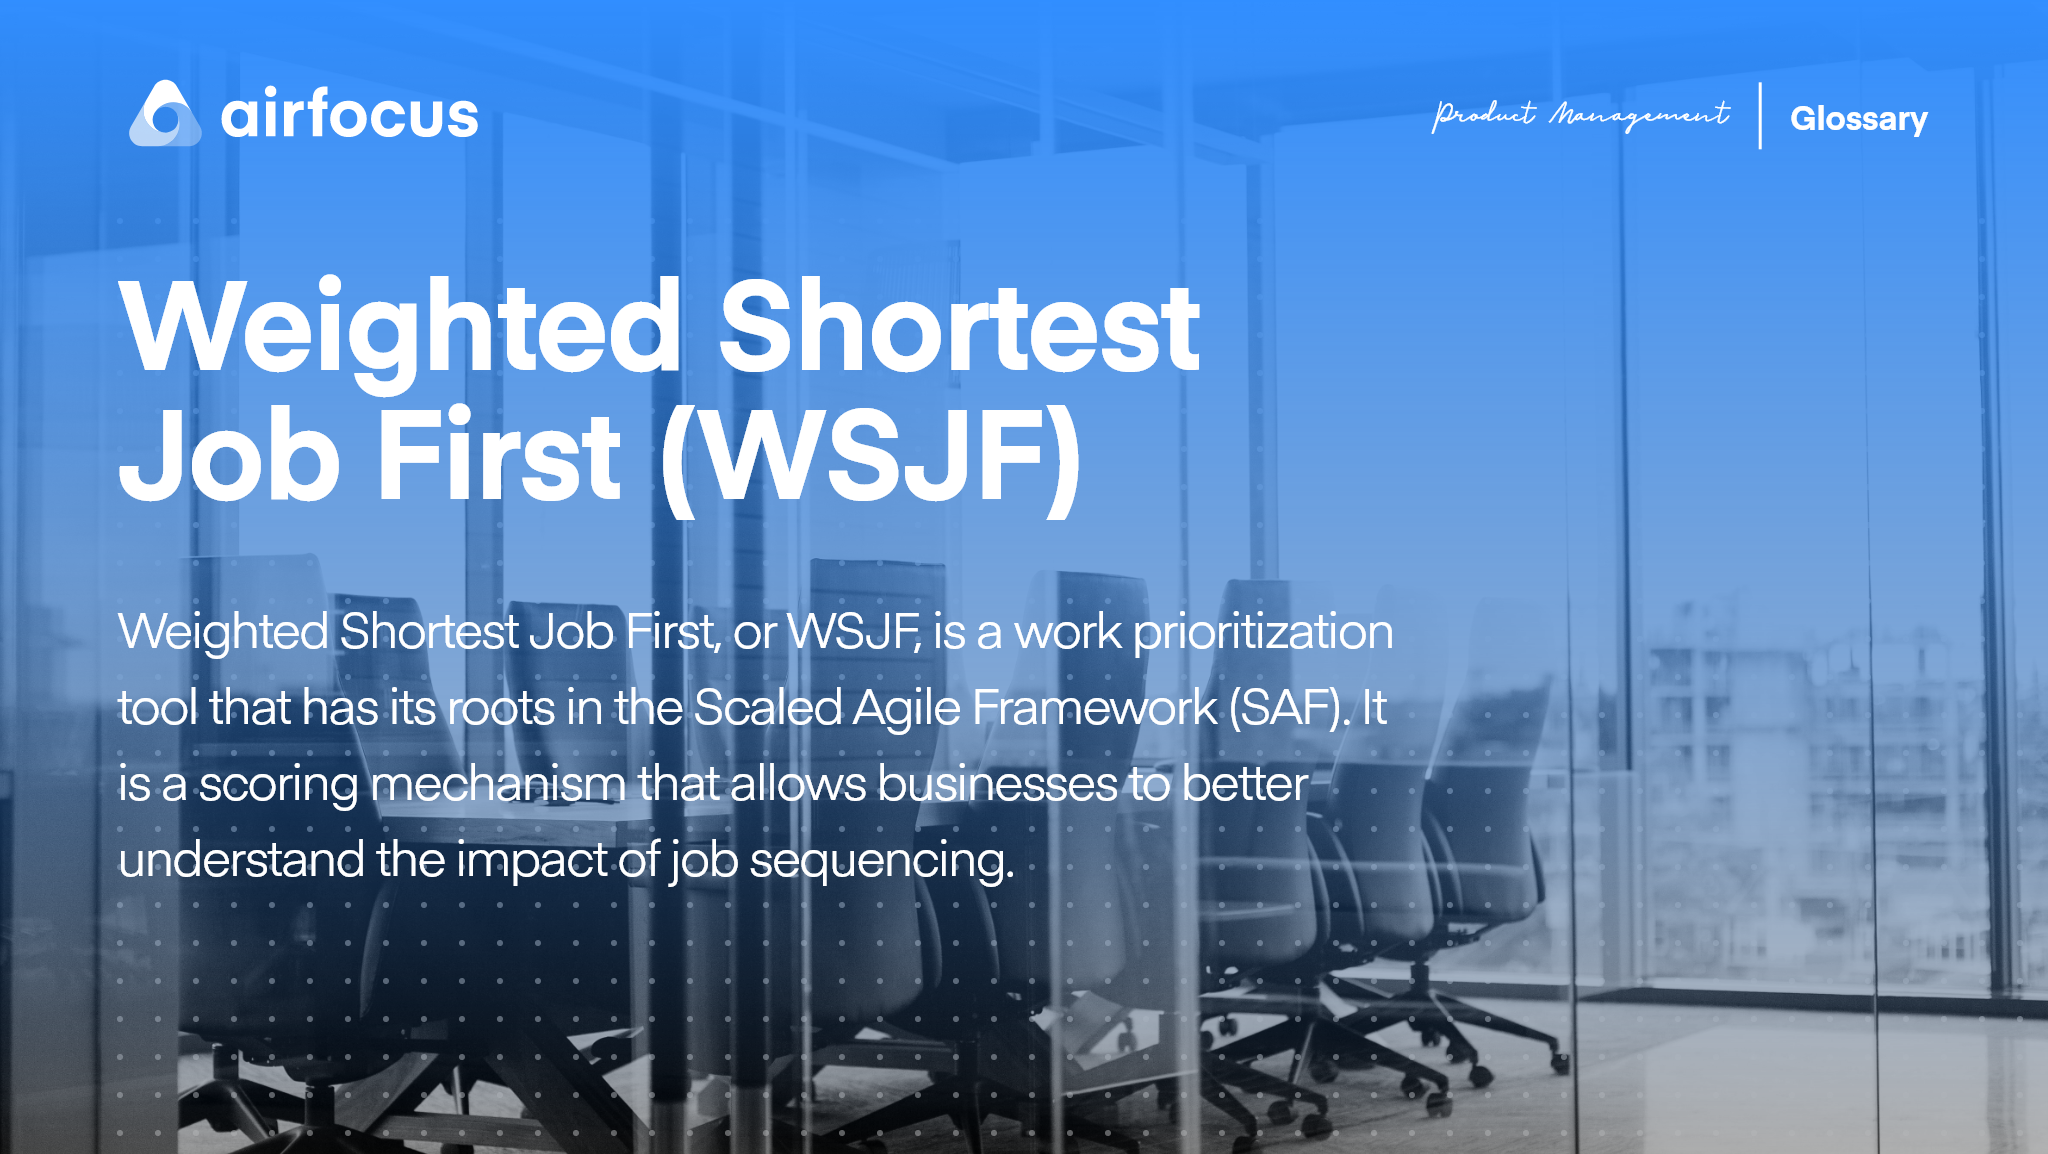 What Is Weighted Shortest Job First (WSJF)?